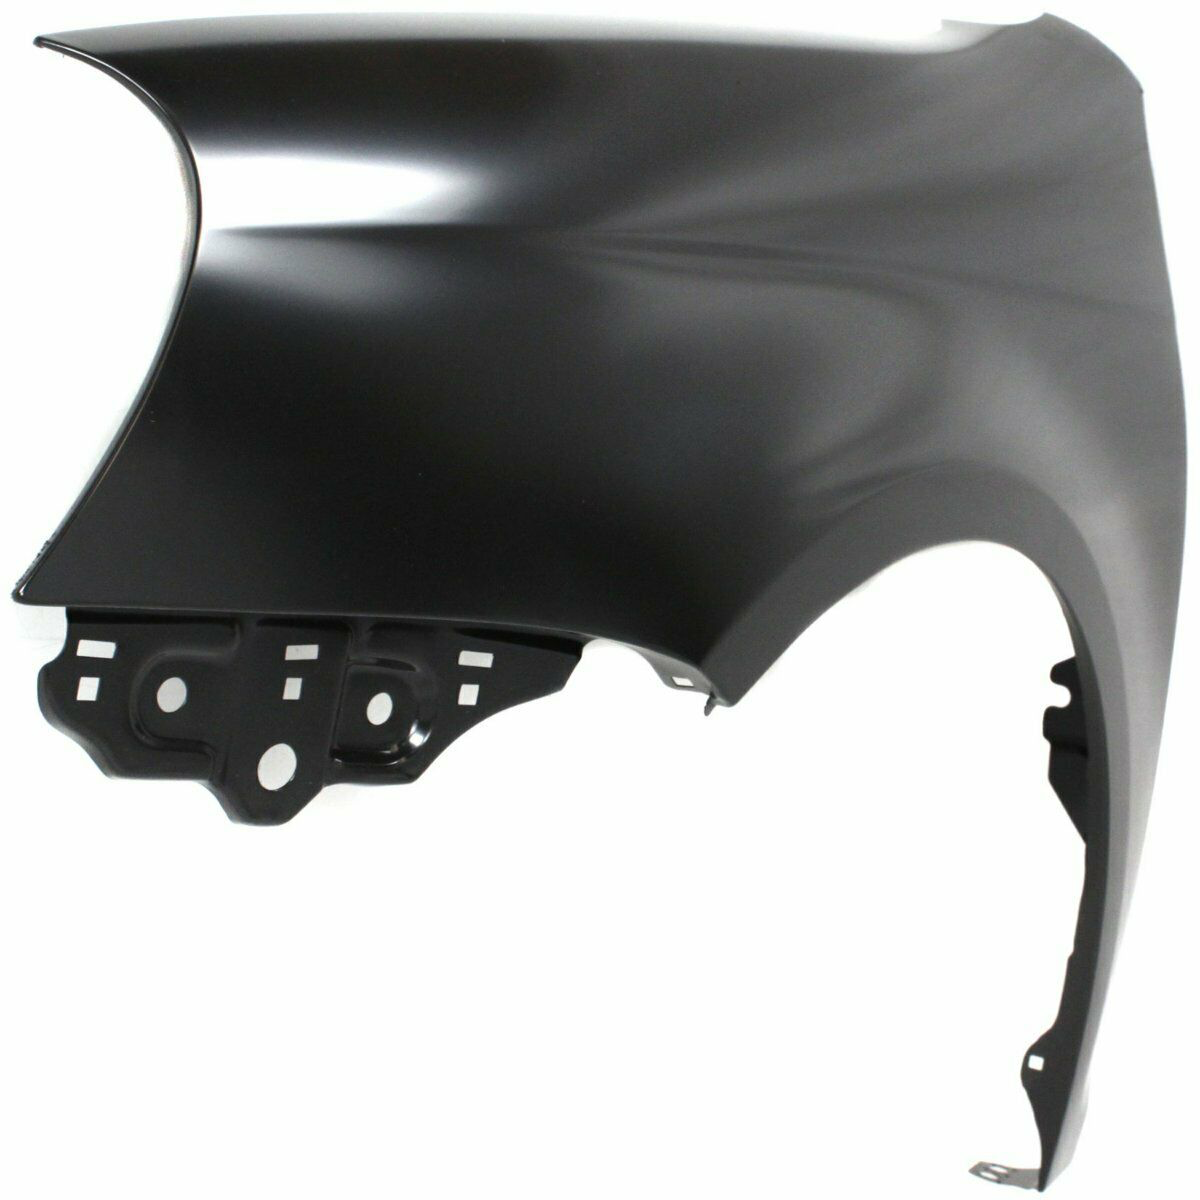 2005-2010 Volkswagen Jetta Left Fender Painted to Match